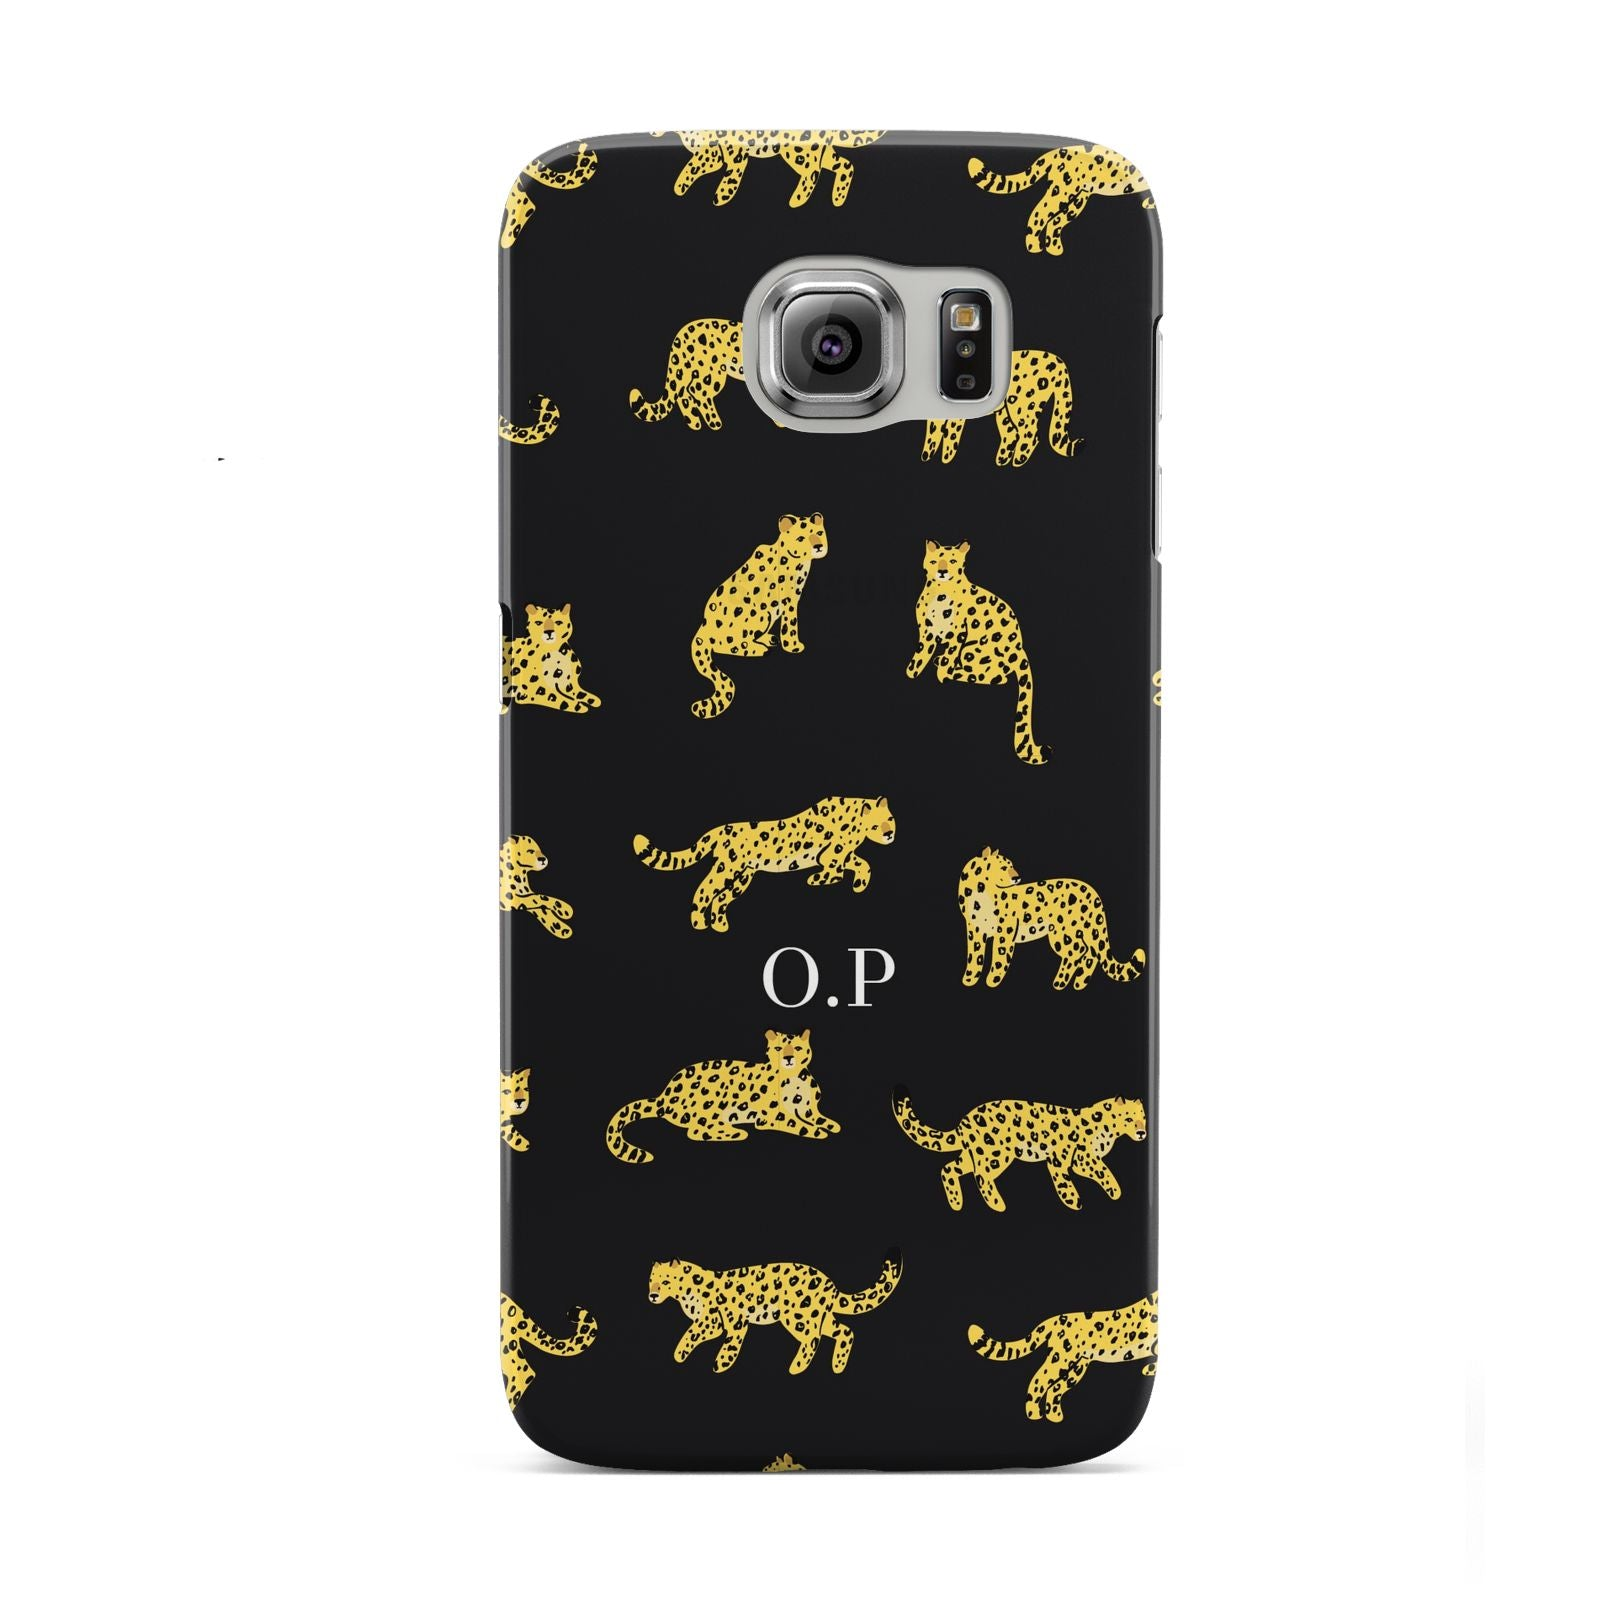 Prowling Leopard Samsung Galaxy S6 Case